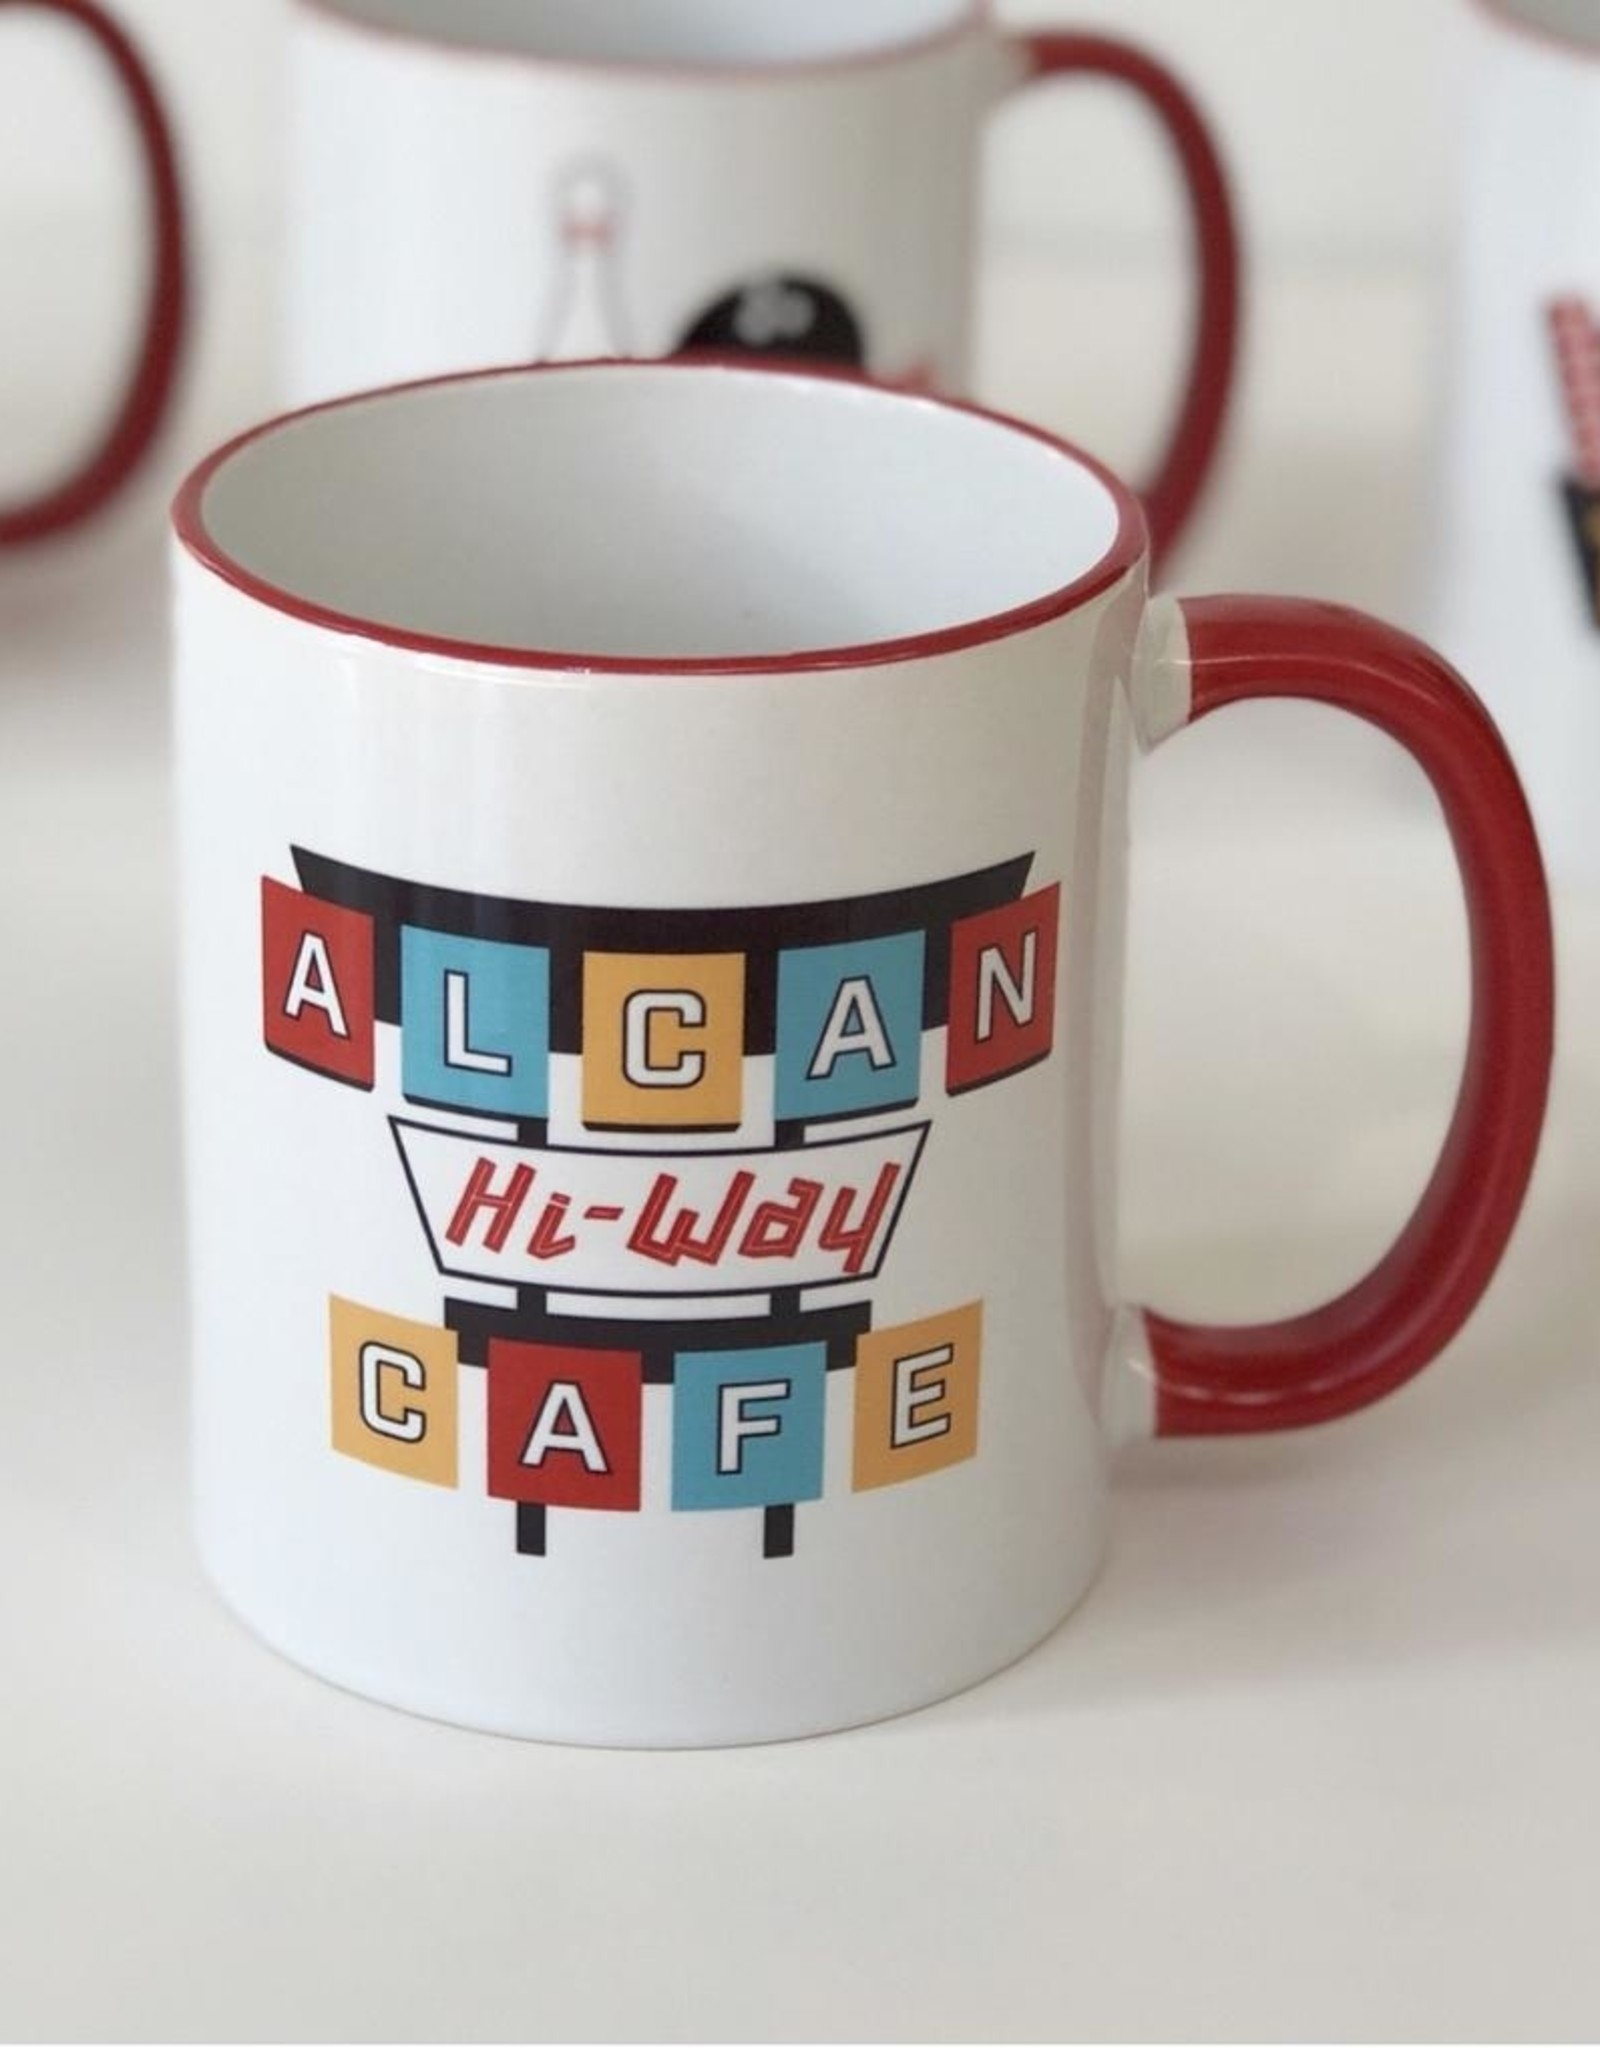 The Collective Good The Collective Good Alcan Cafe Ceramic Mug